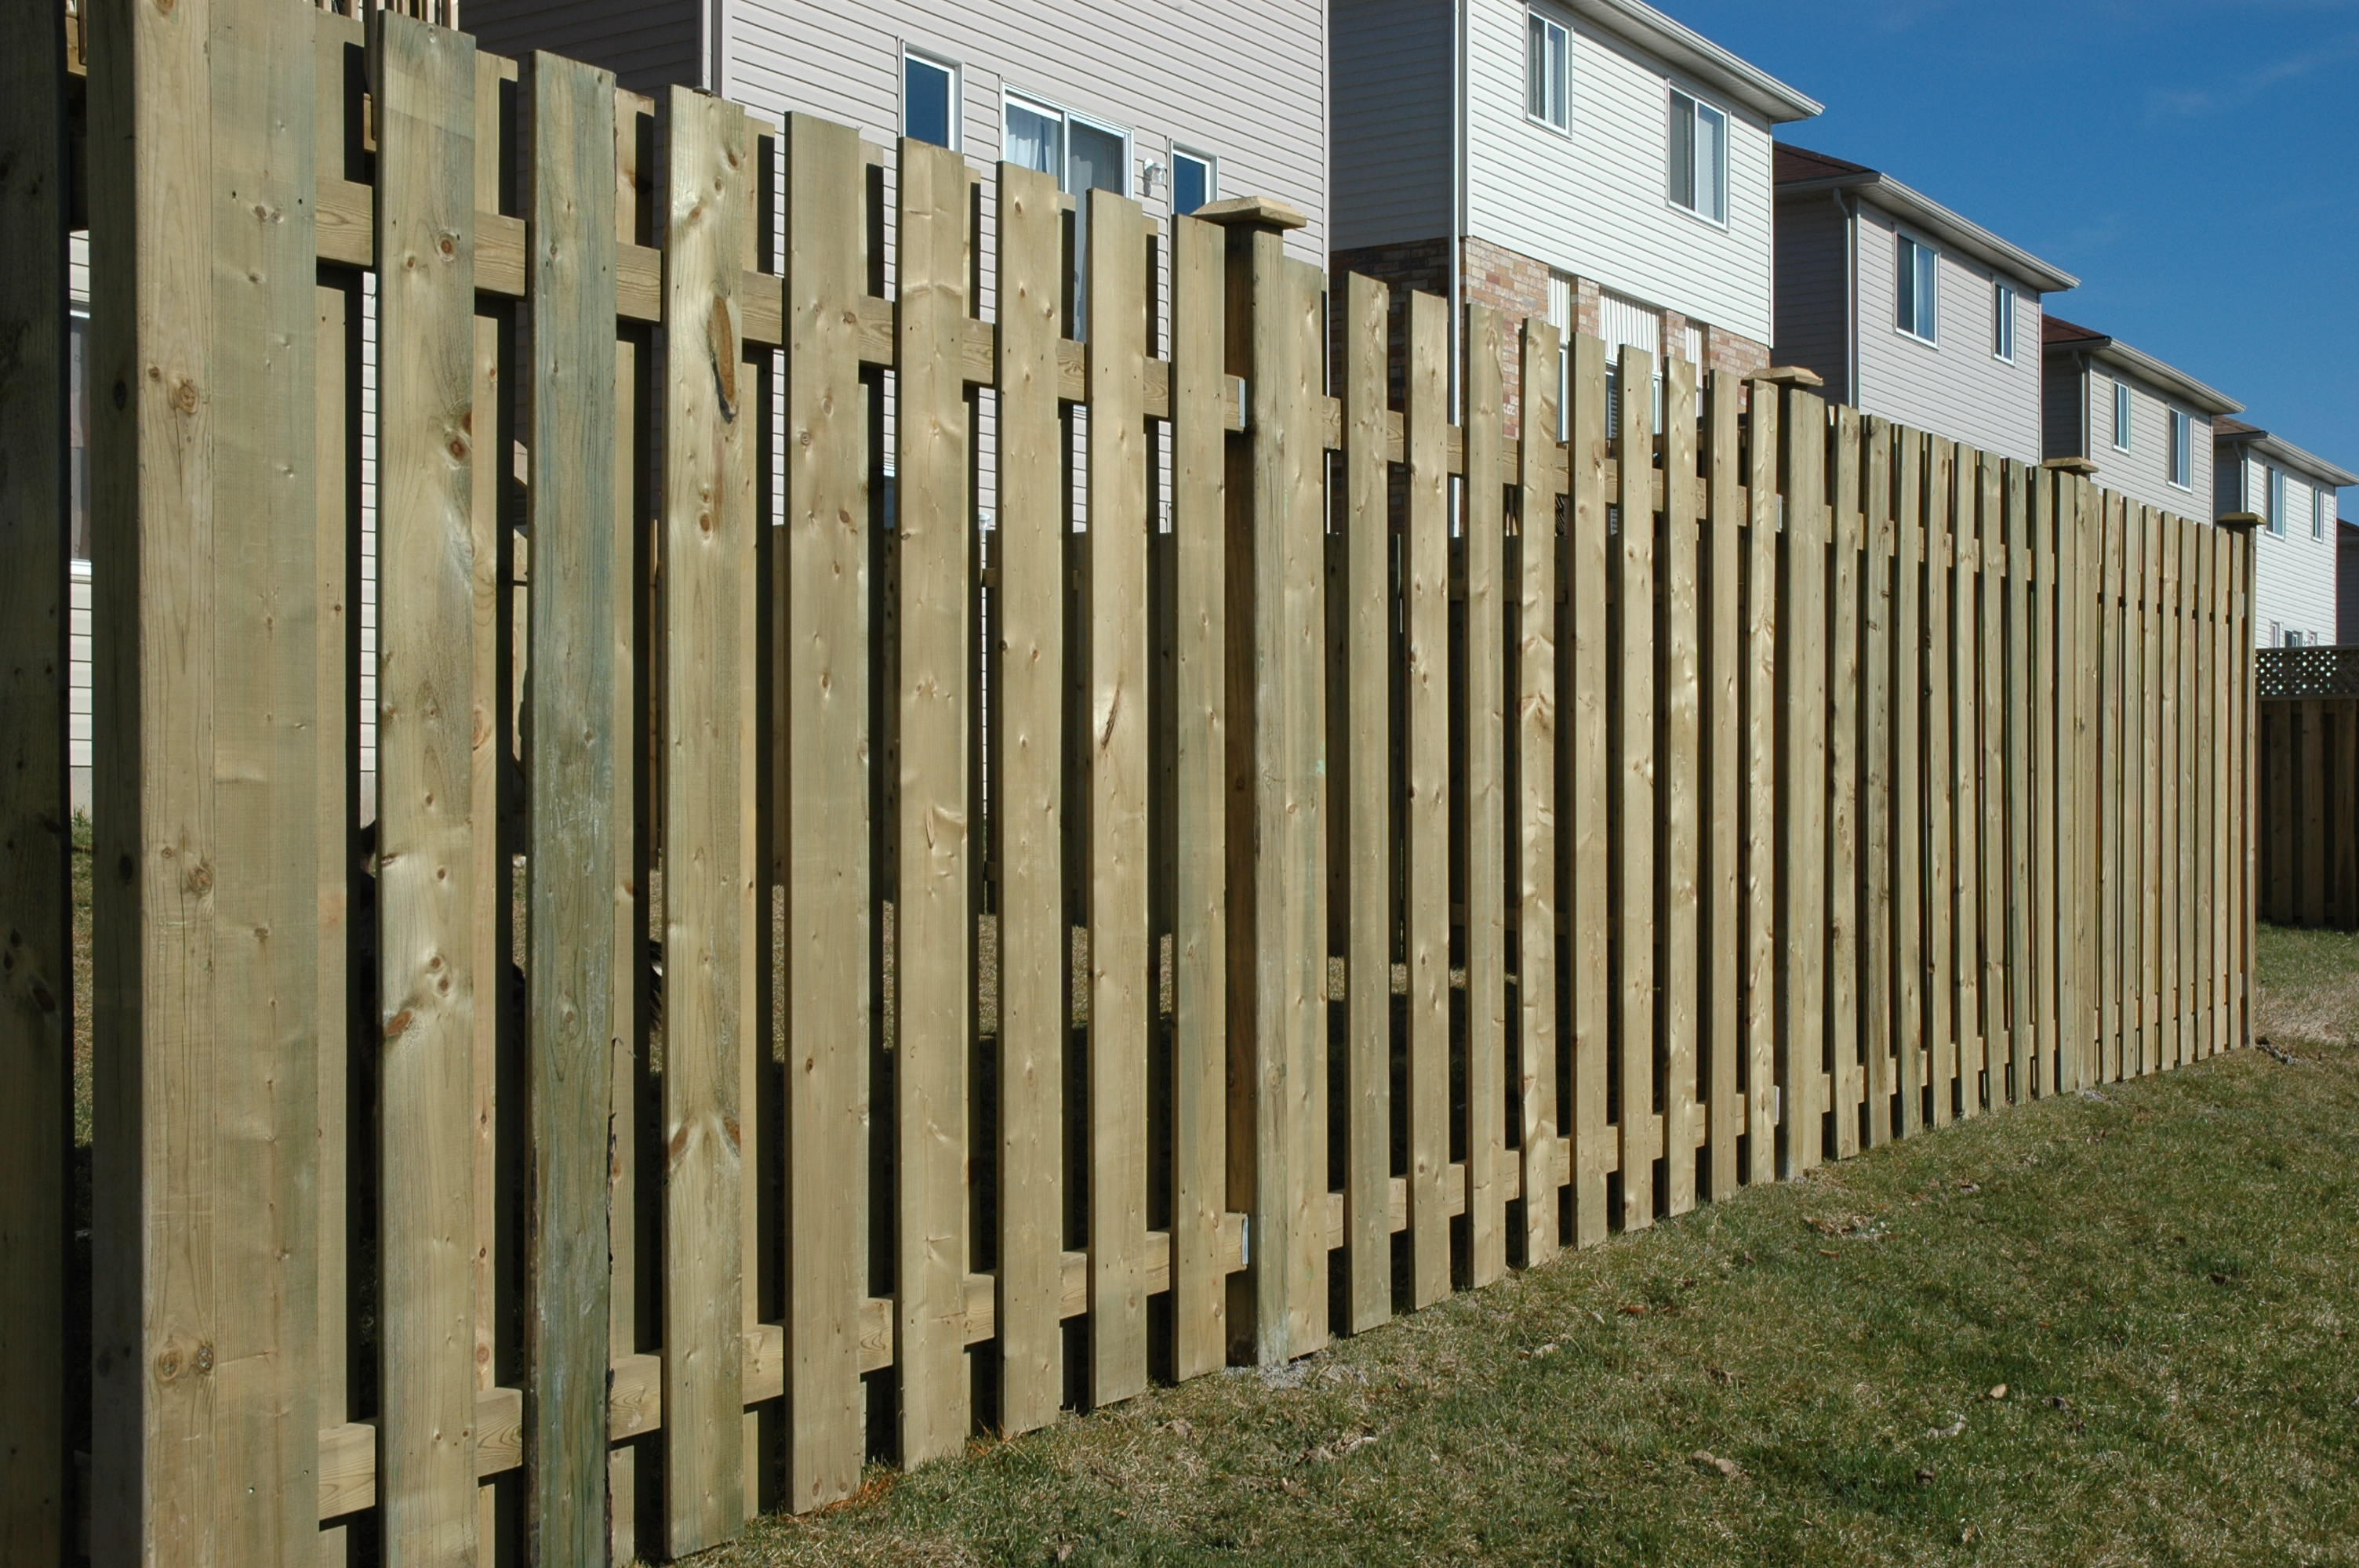 Diy How To Build A 6 Wood Privacy Fence Wooden Pdf Free